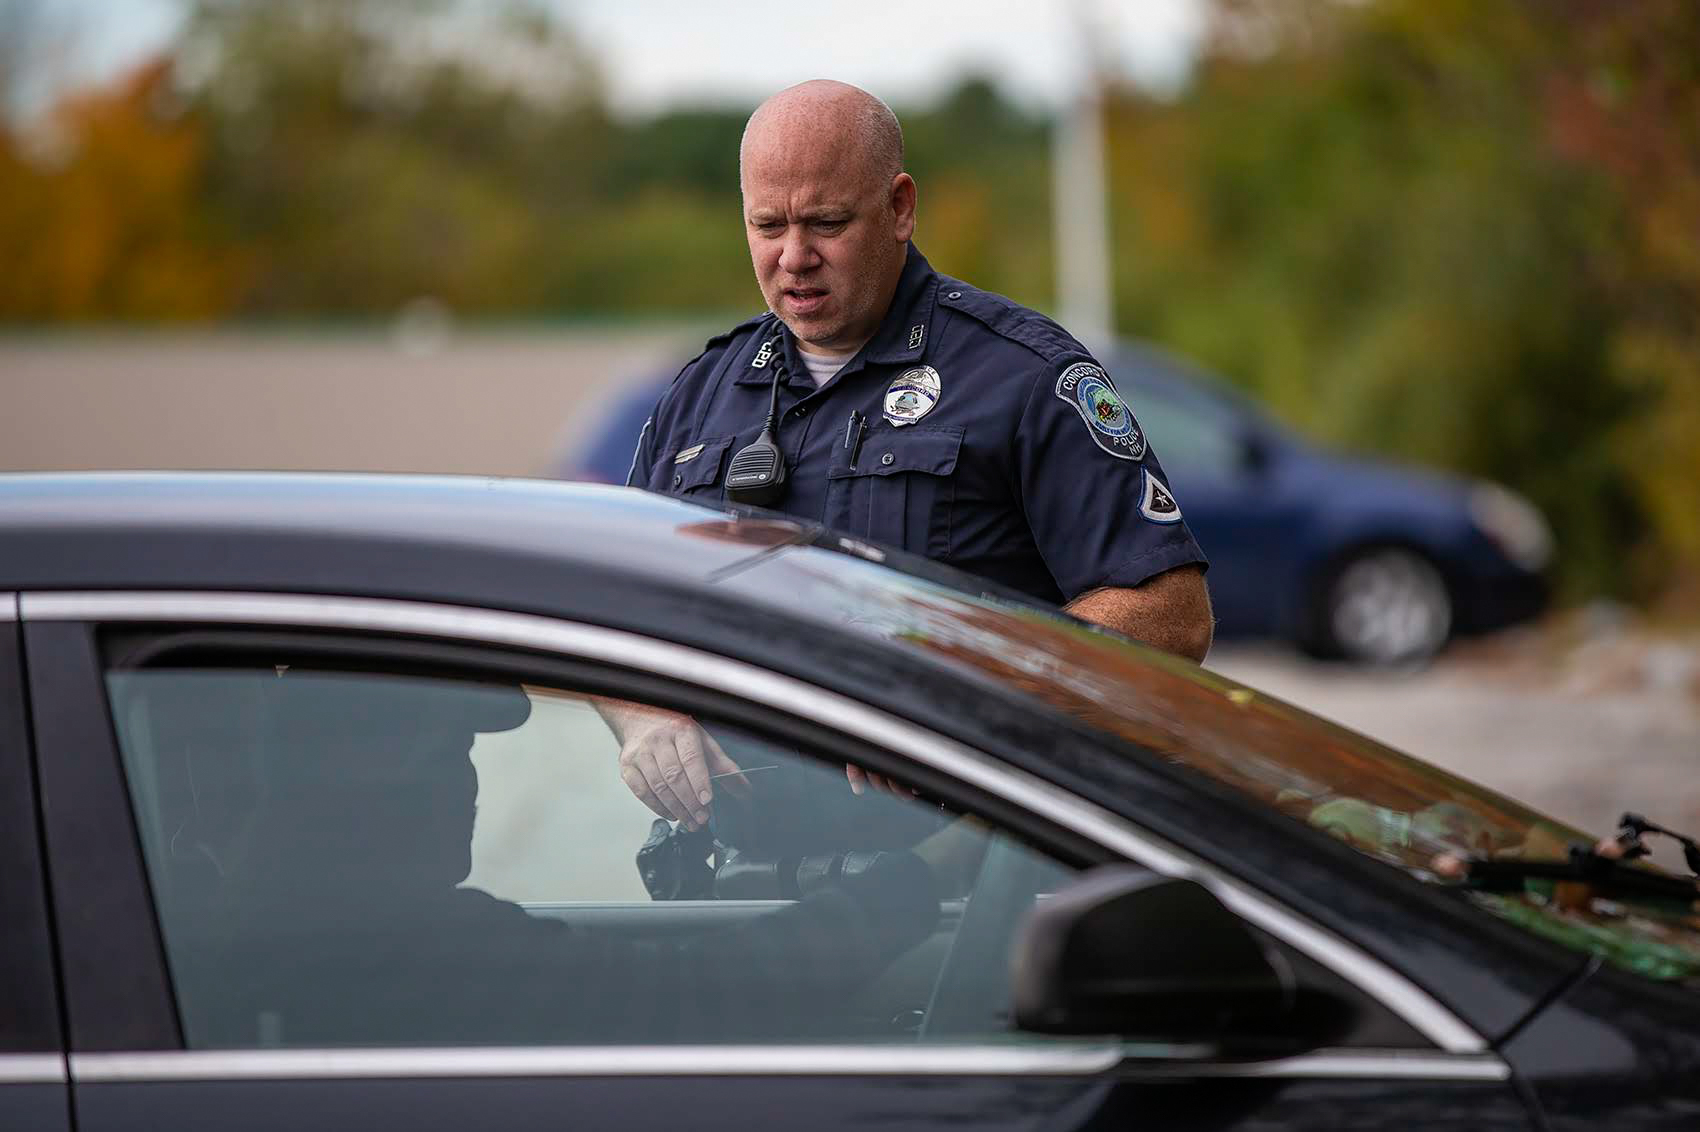 Is It A Meth Case Or Mental Illness? Police Who Need To Know Often Can't Tell